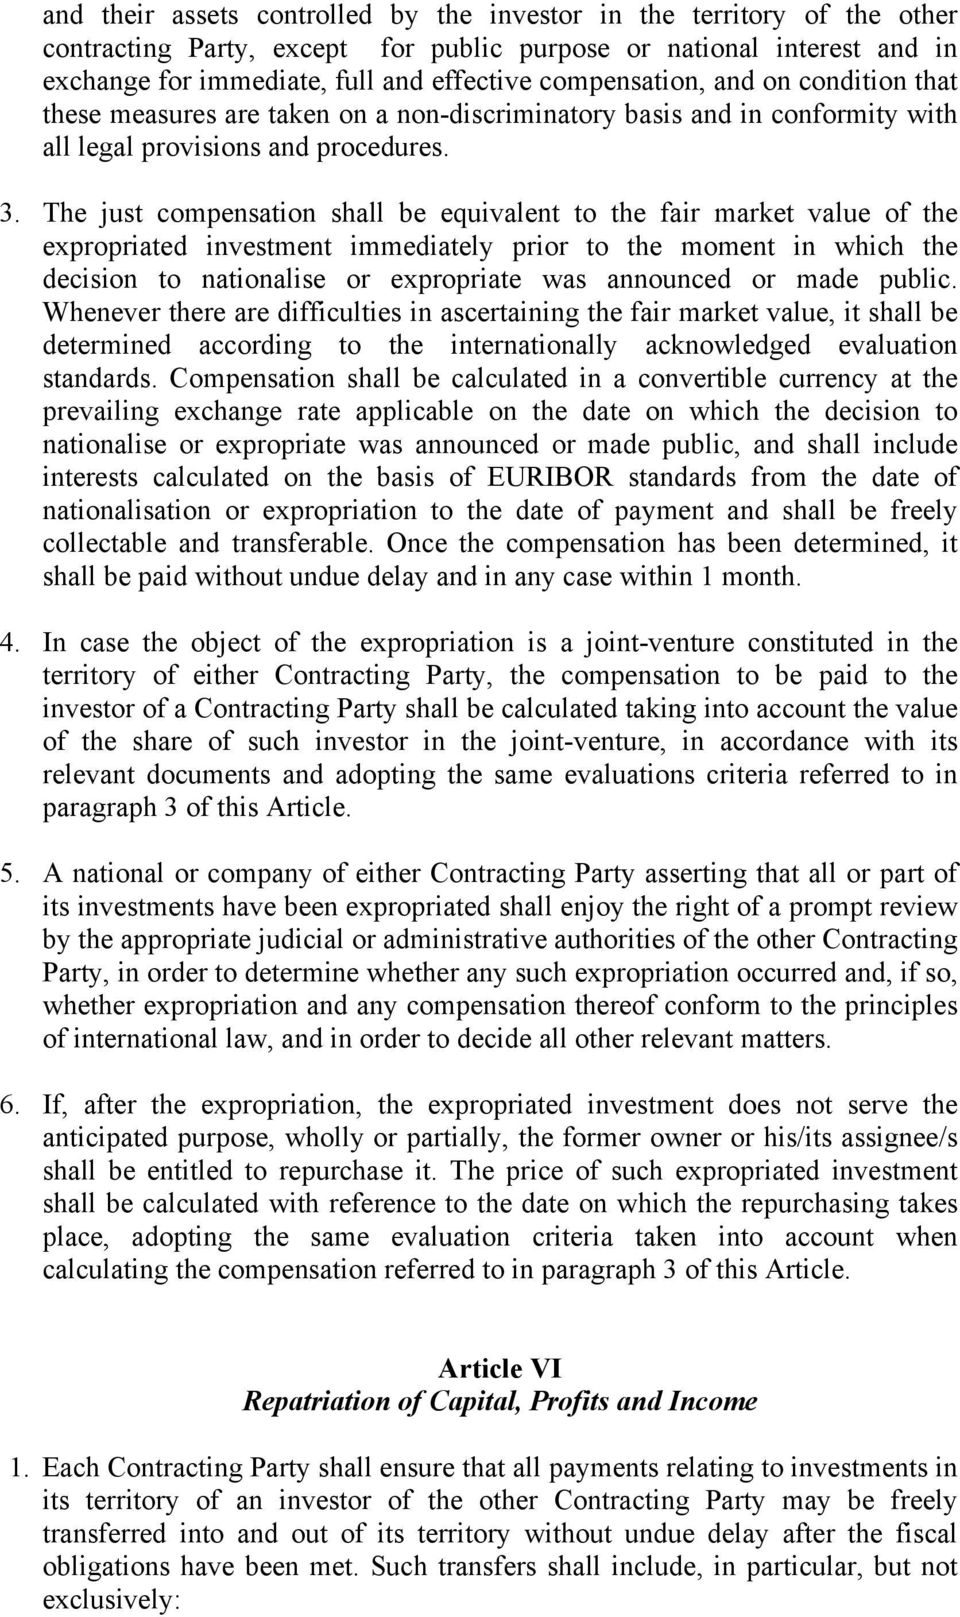 The just compensation shall be equivalent to the fair market value of the expropriated investment immediately prior to the moment in which the decision to nationalise or expropriate was announced or